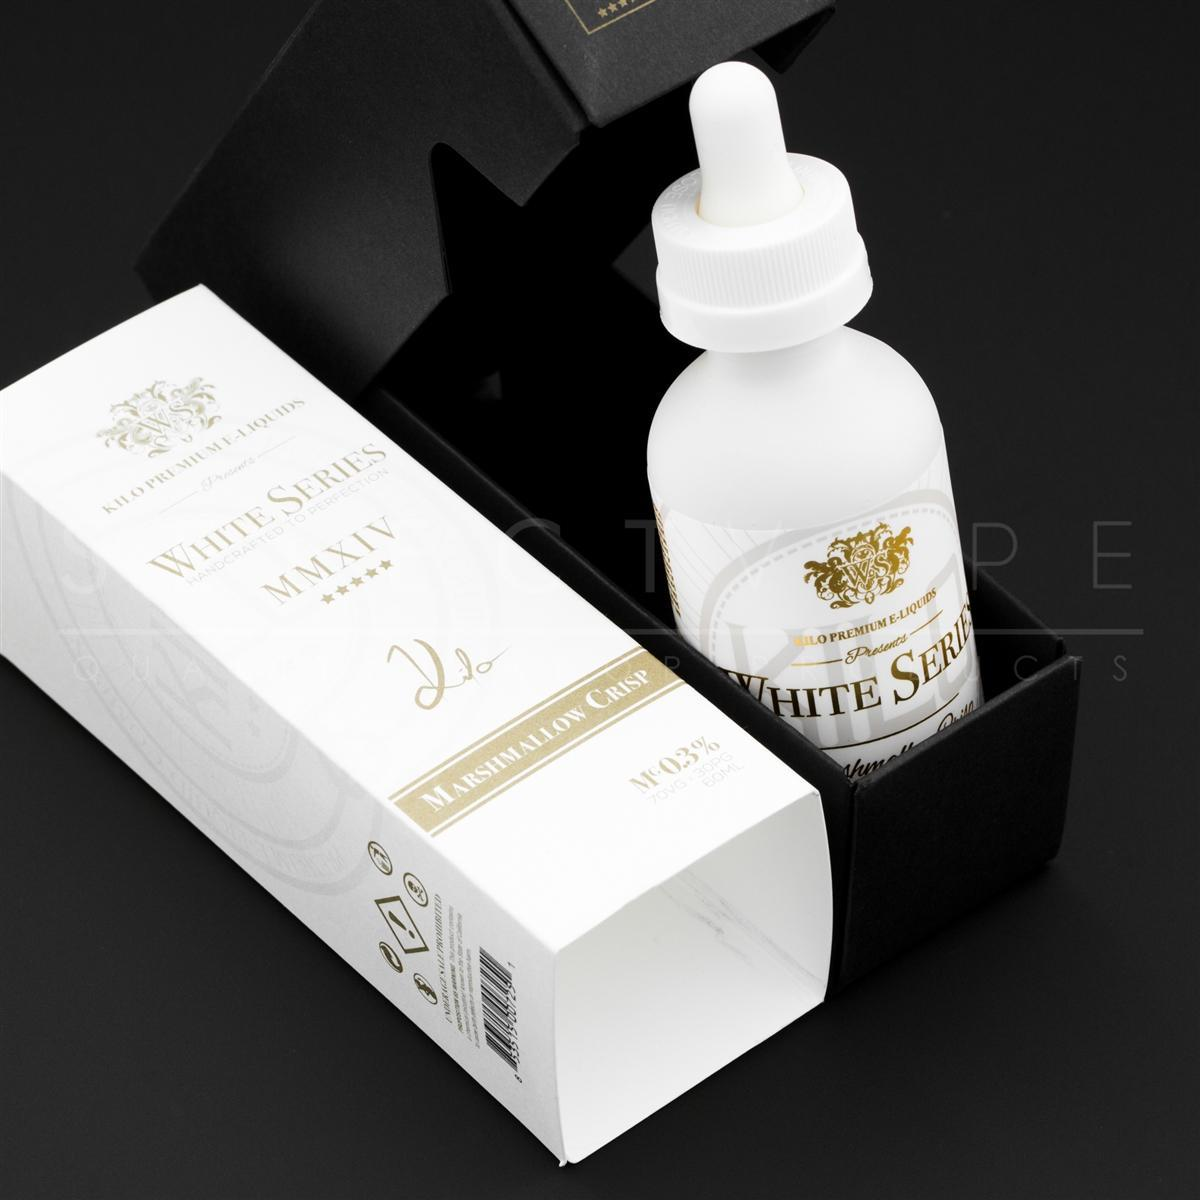 Kilo White Series - Marshmallow Crisp 60ml